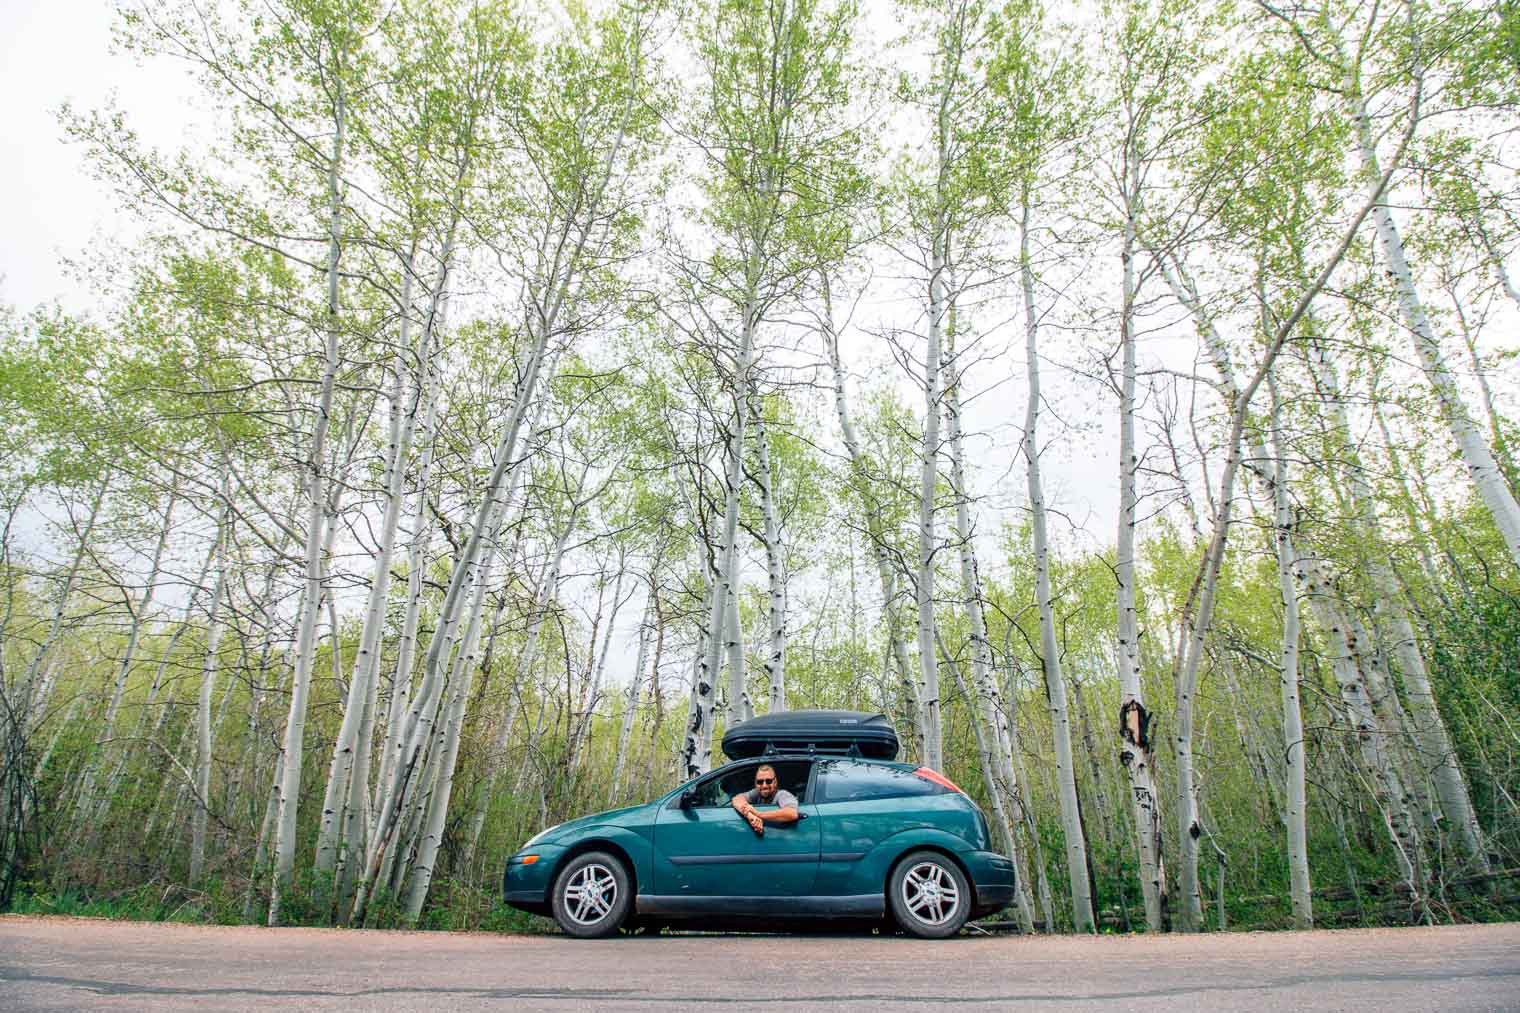 Michael leaning out the window of his green Ford focus hatchback with aspen trees in the background